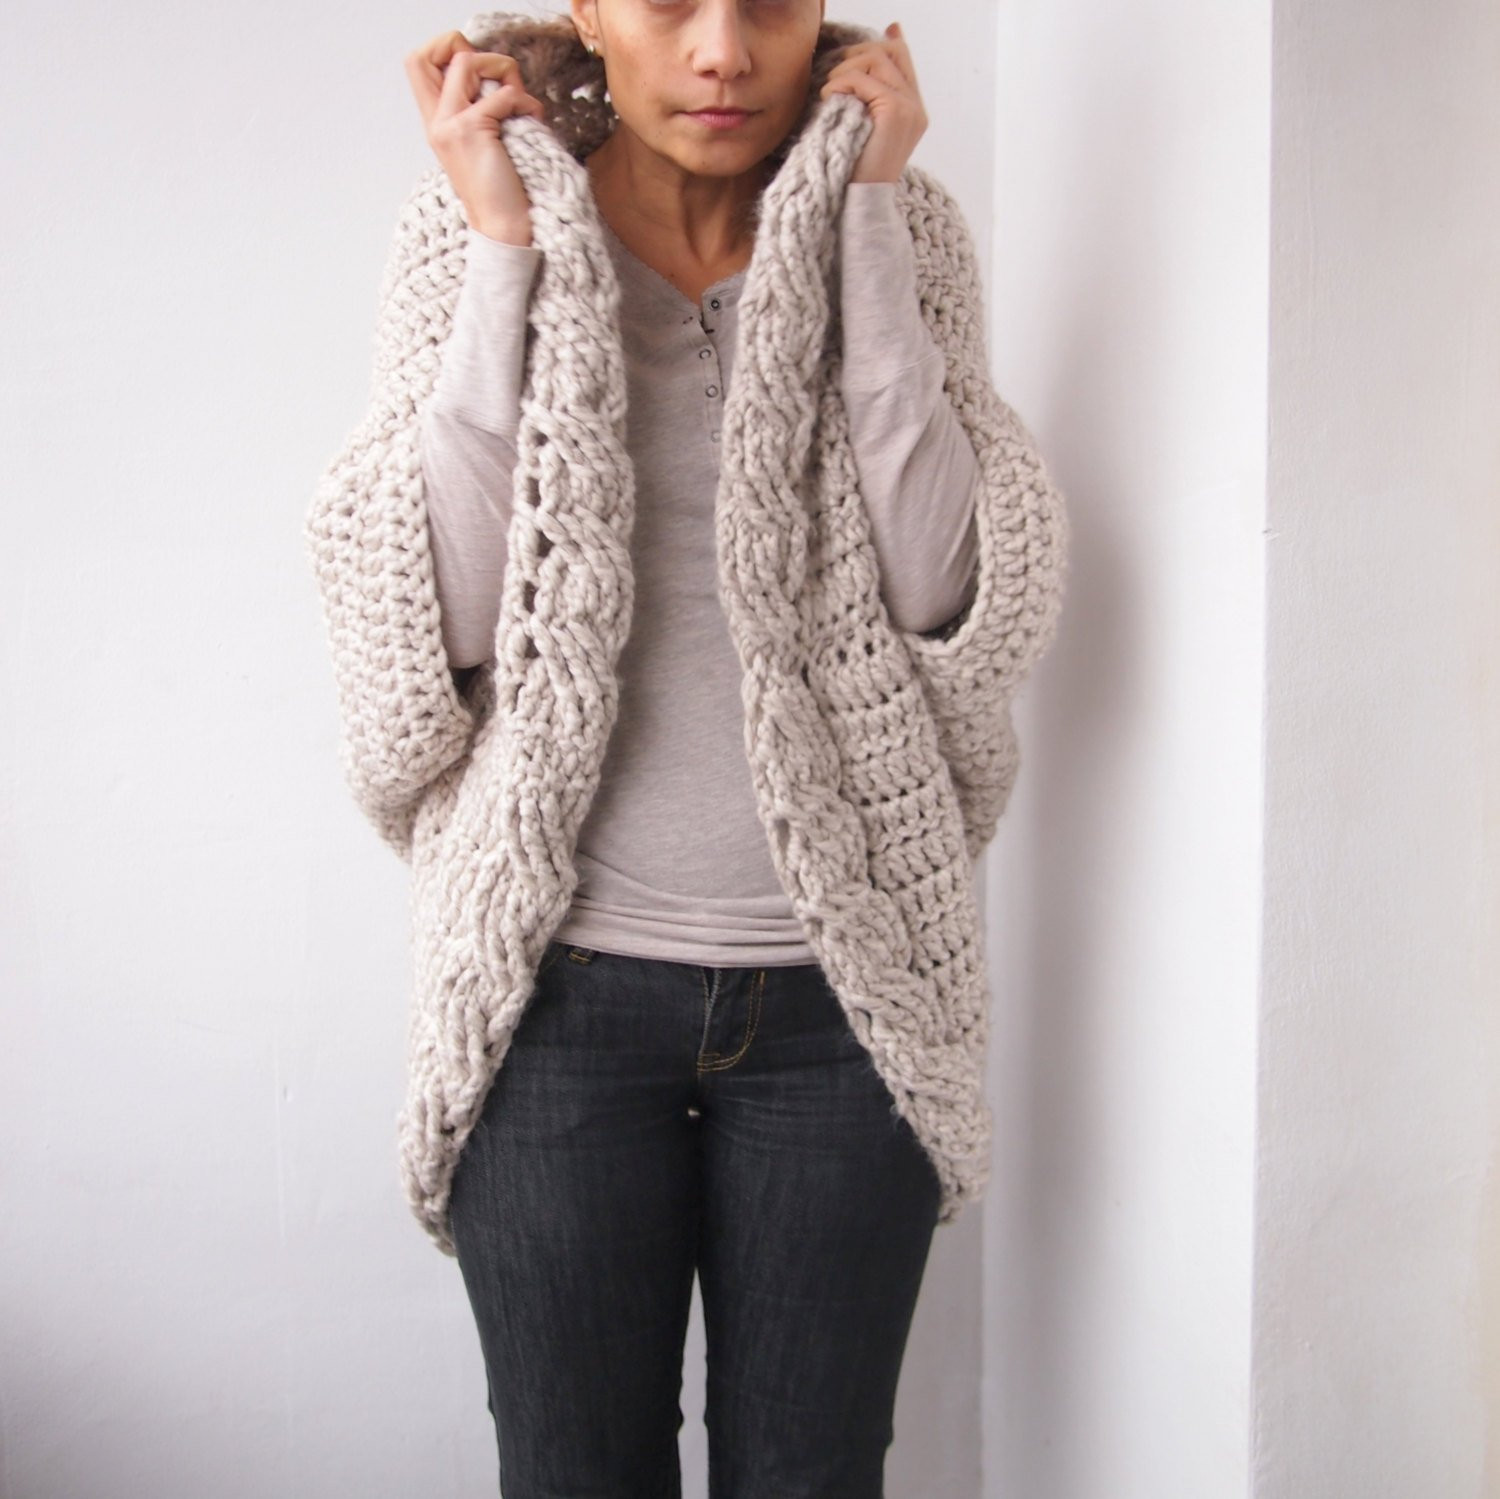 Cardigan Pattern Inspirational Crochet Pattern Cable Women Cocoon Shrug Bulky Coat Cardigan Of Superb 46 Images Cardigan Pattern